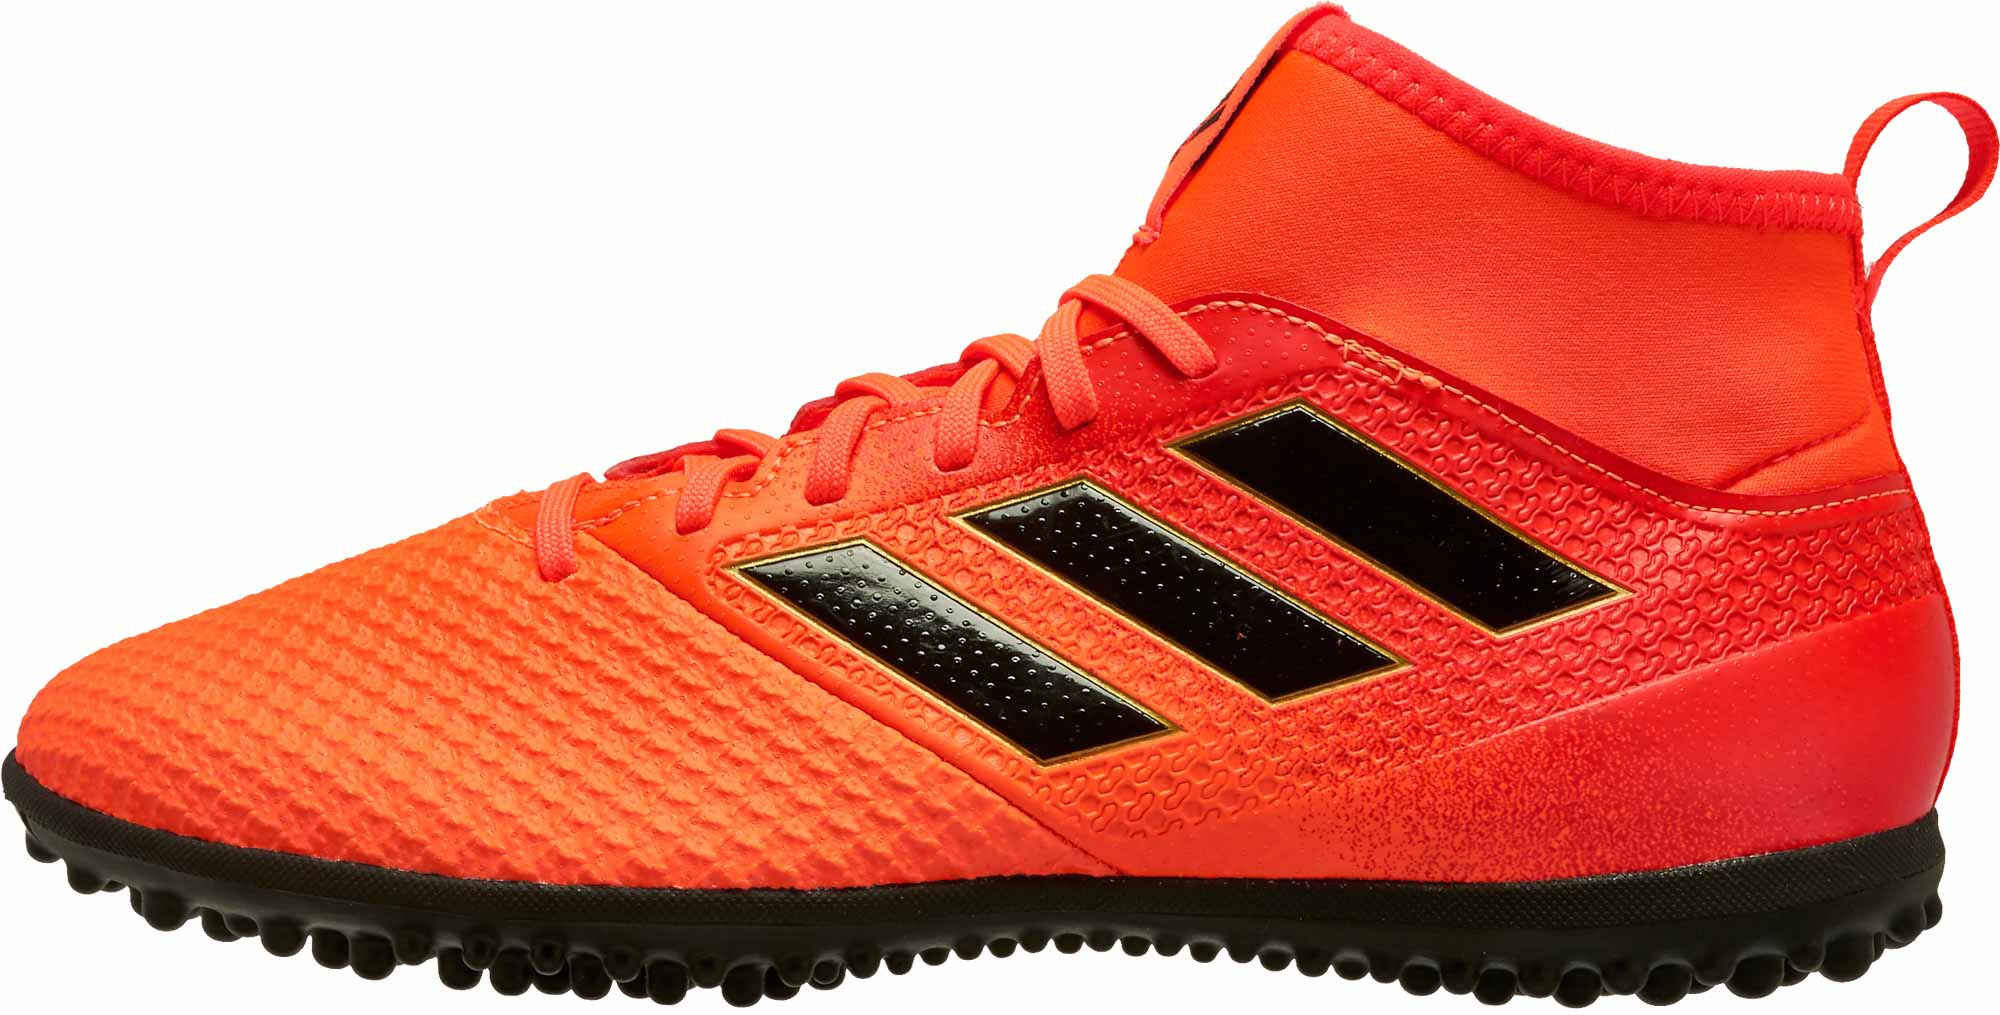 adidas ACE Tango 17.3 TF Solar Red & Solar Orange Soccer